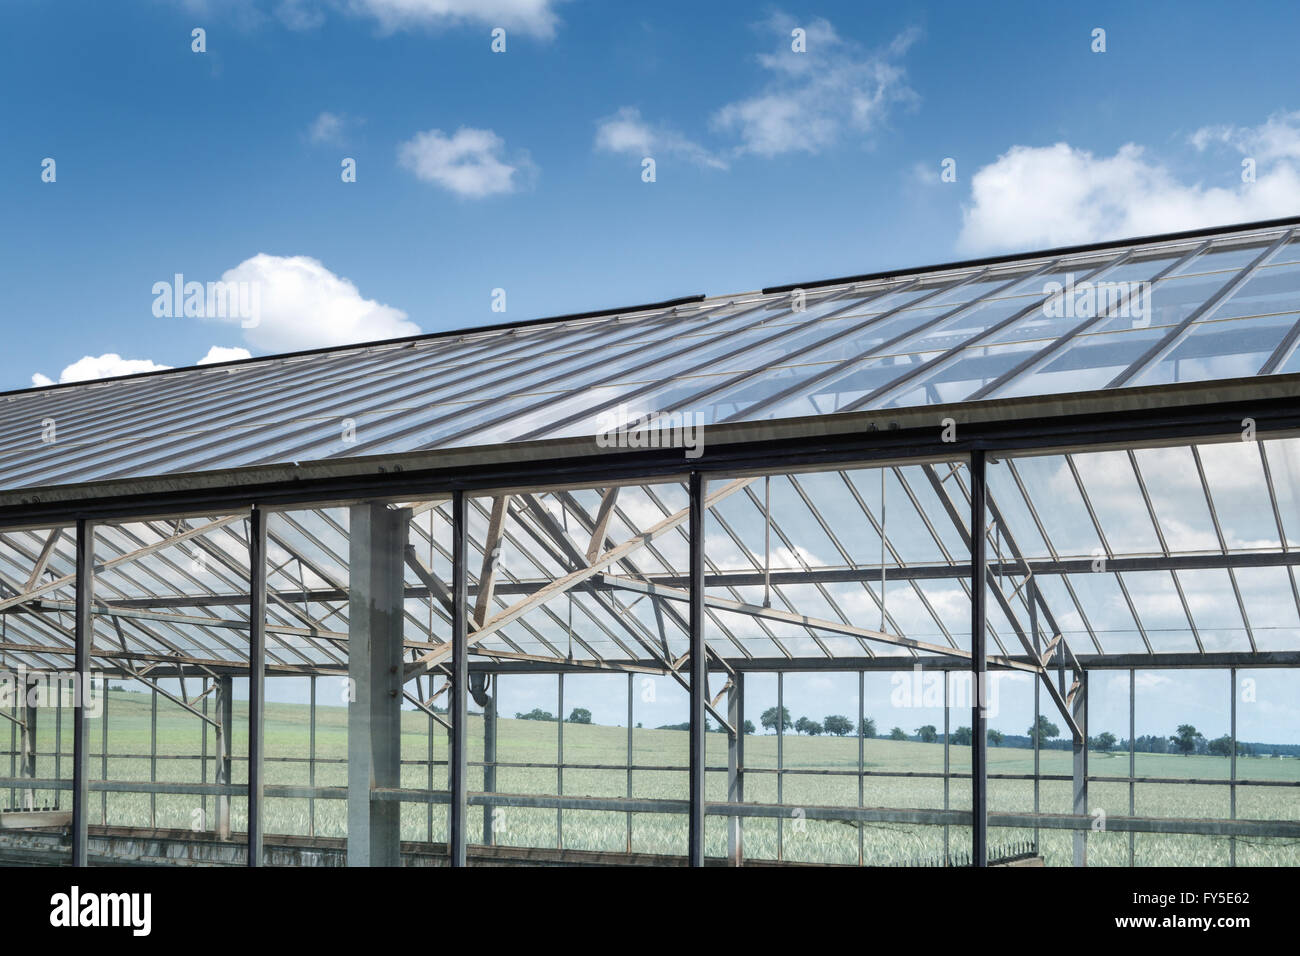 Greenhouse for sewage sludge drying - Stock Image